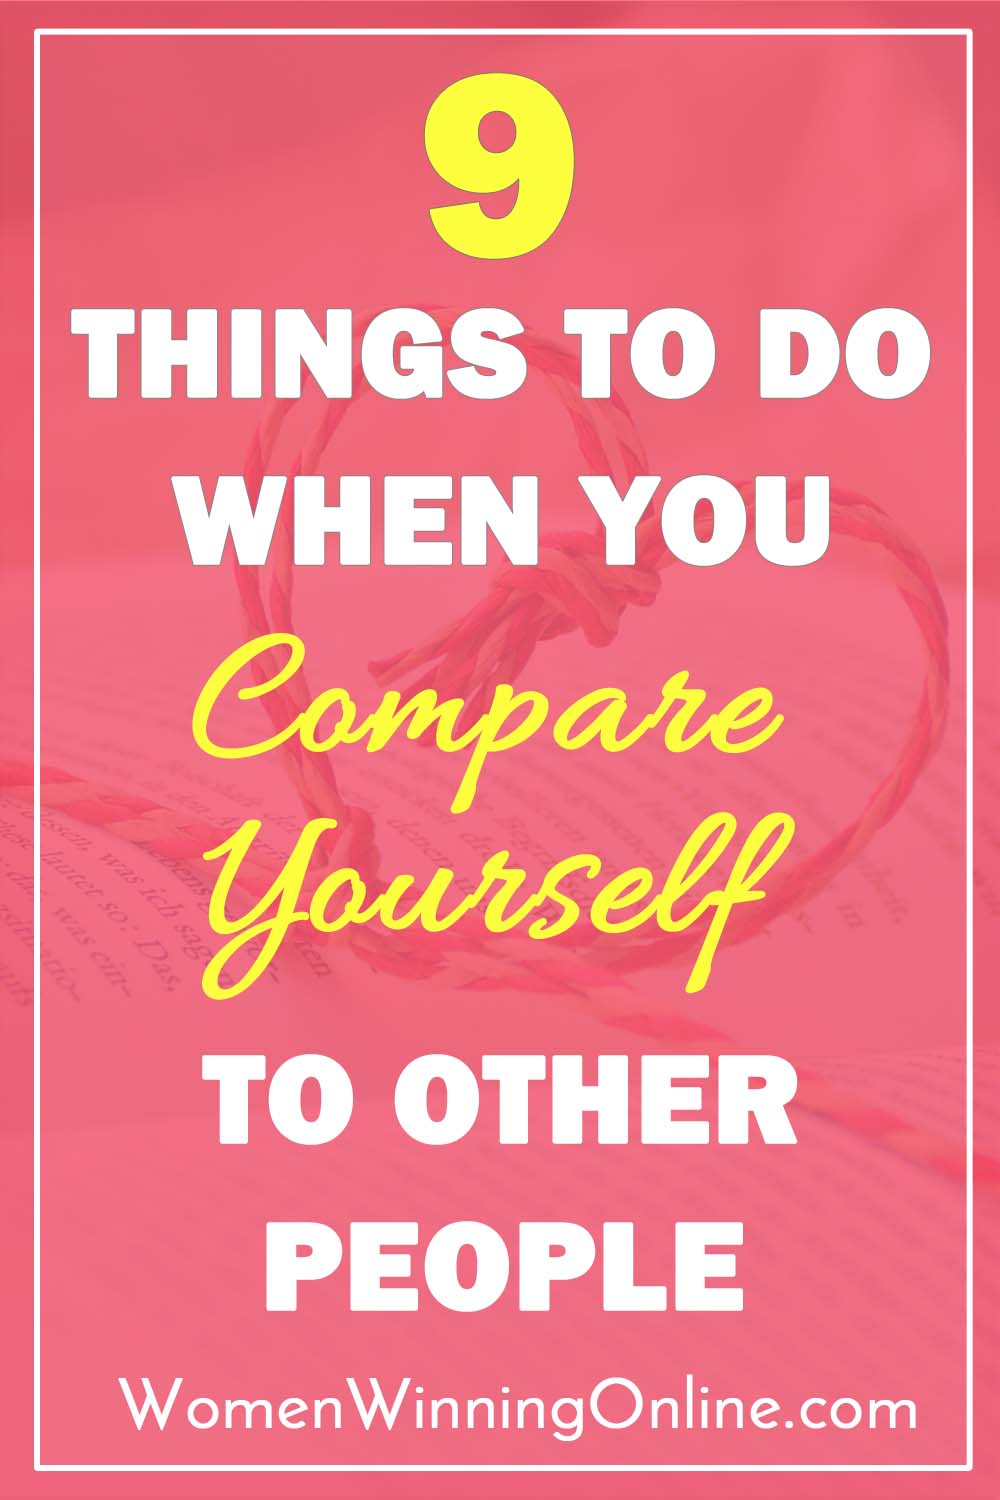 9-things-to-do-when-you-compare-yourself-to-other-people-pink